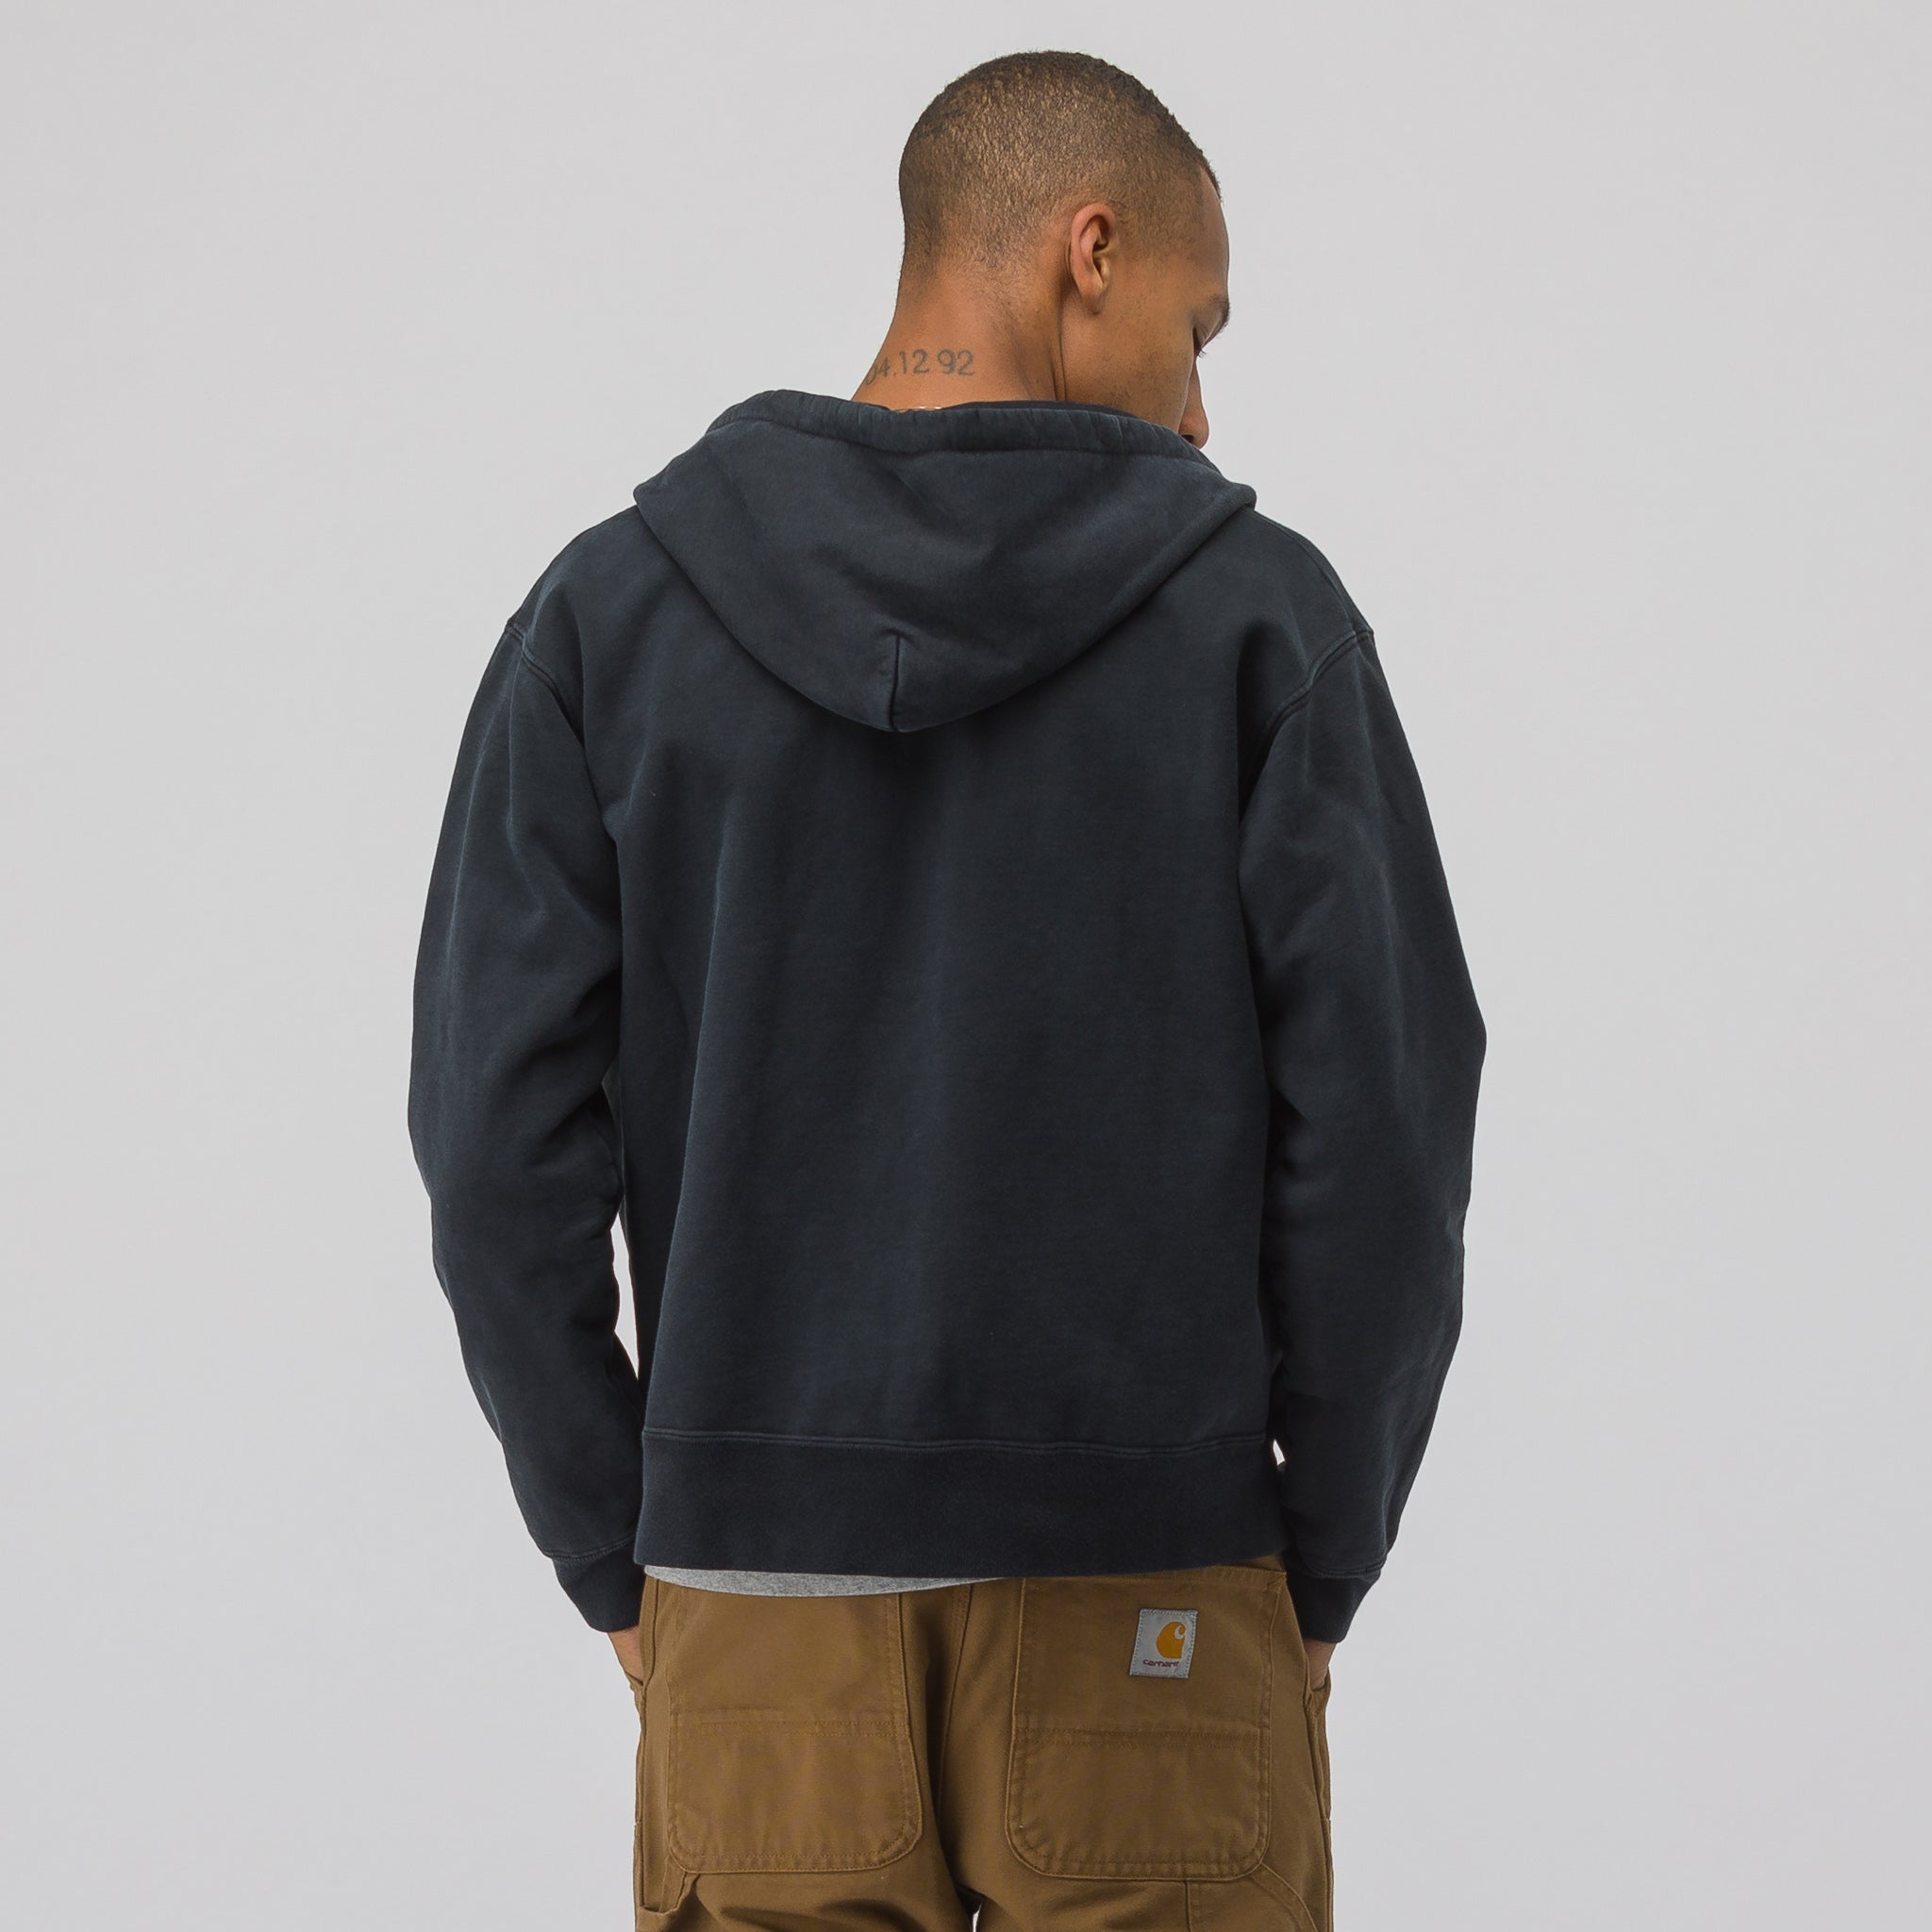 Replica Hoodie in Washed Black